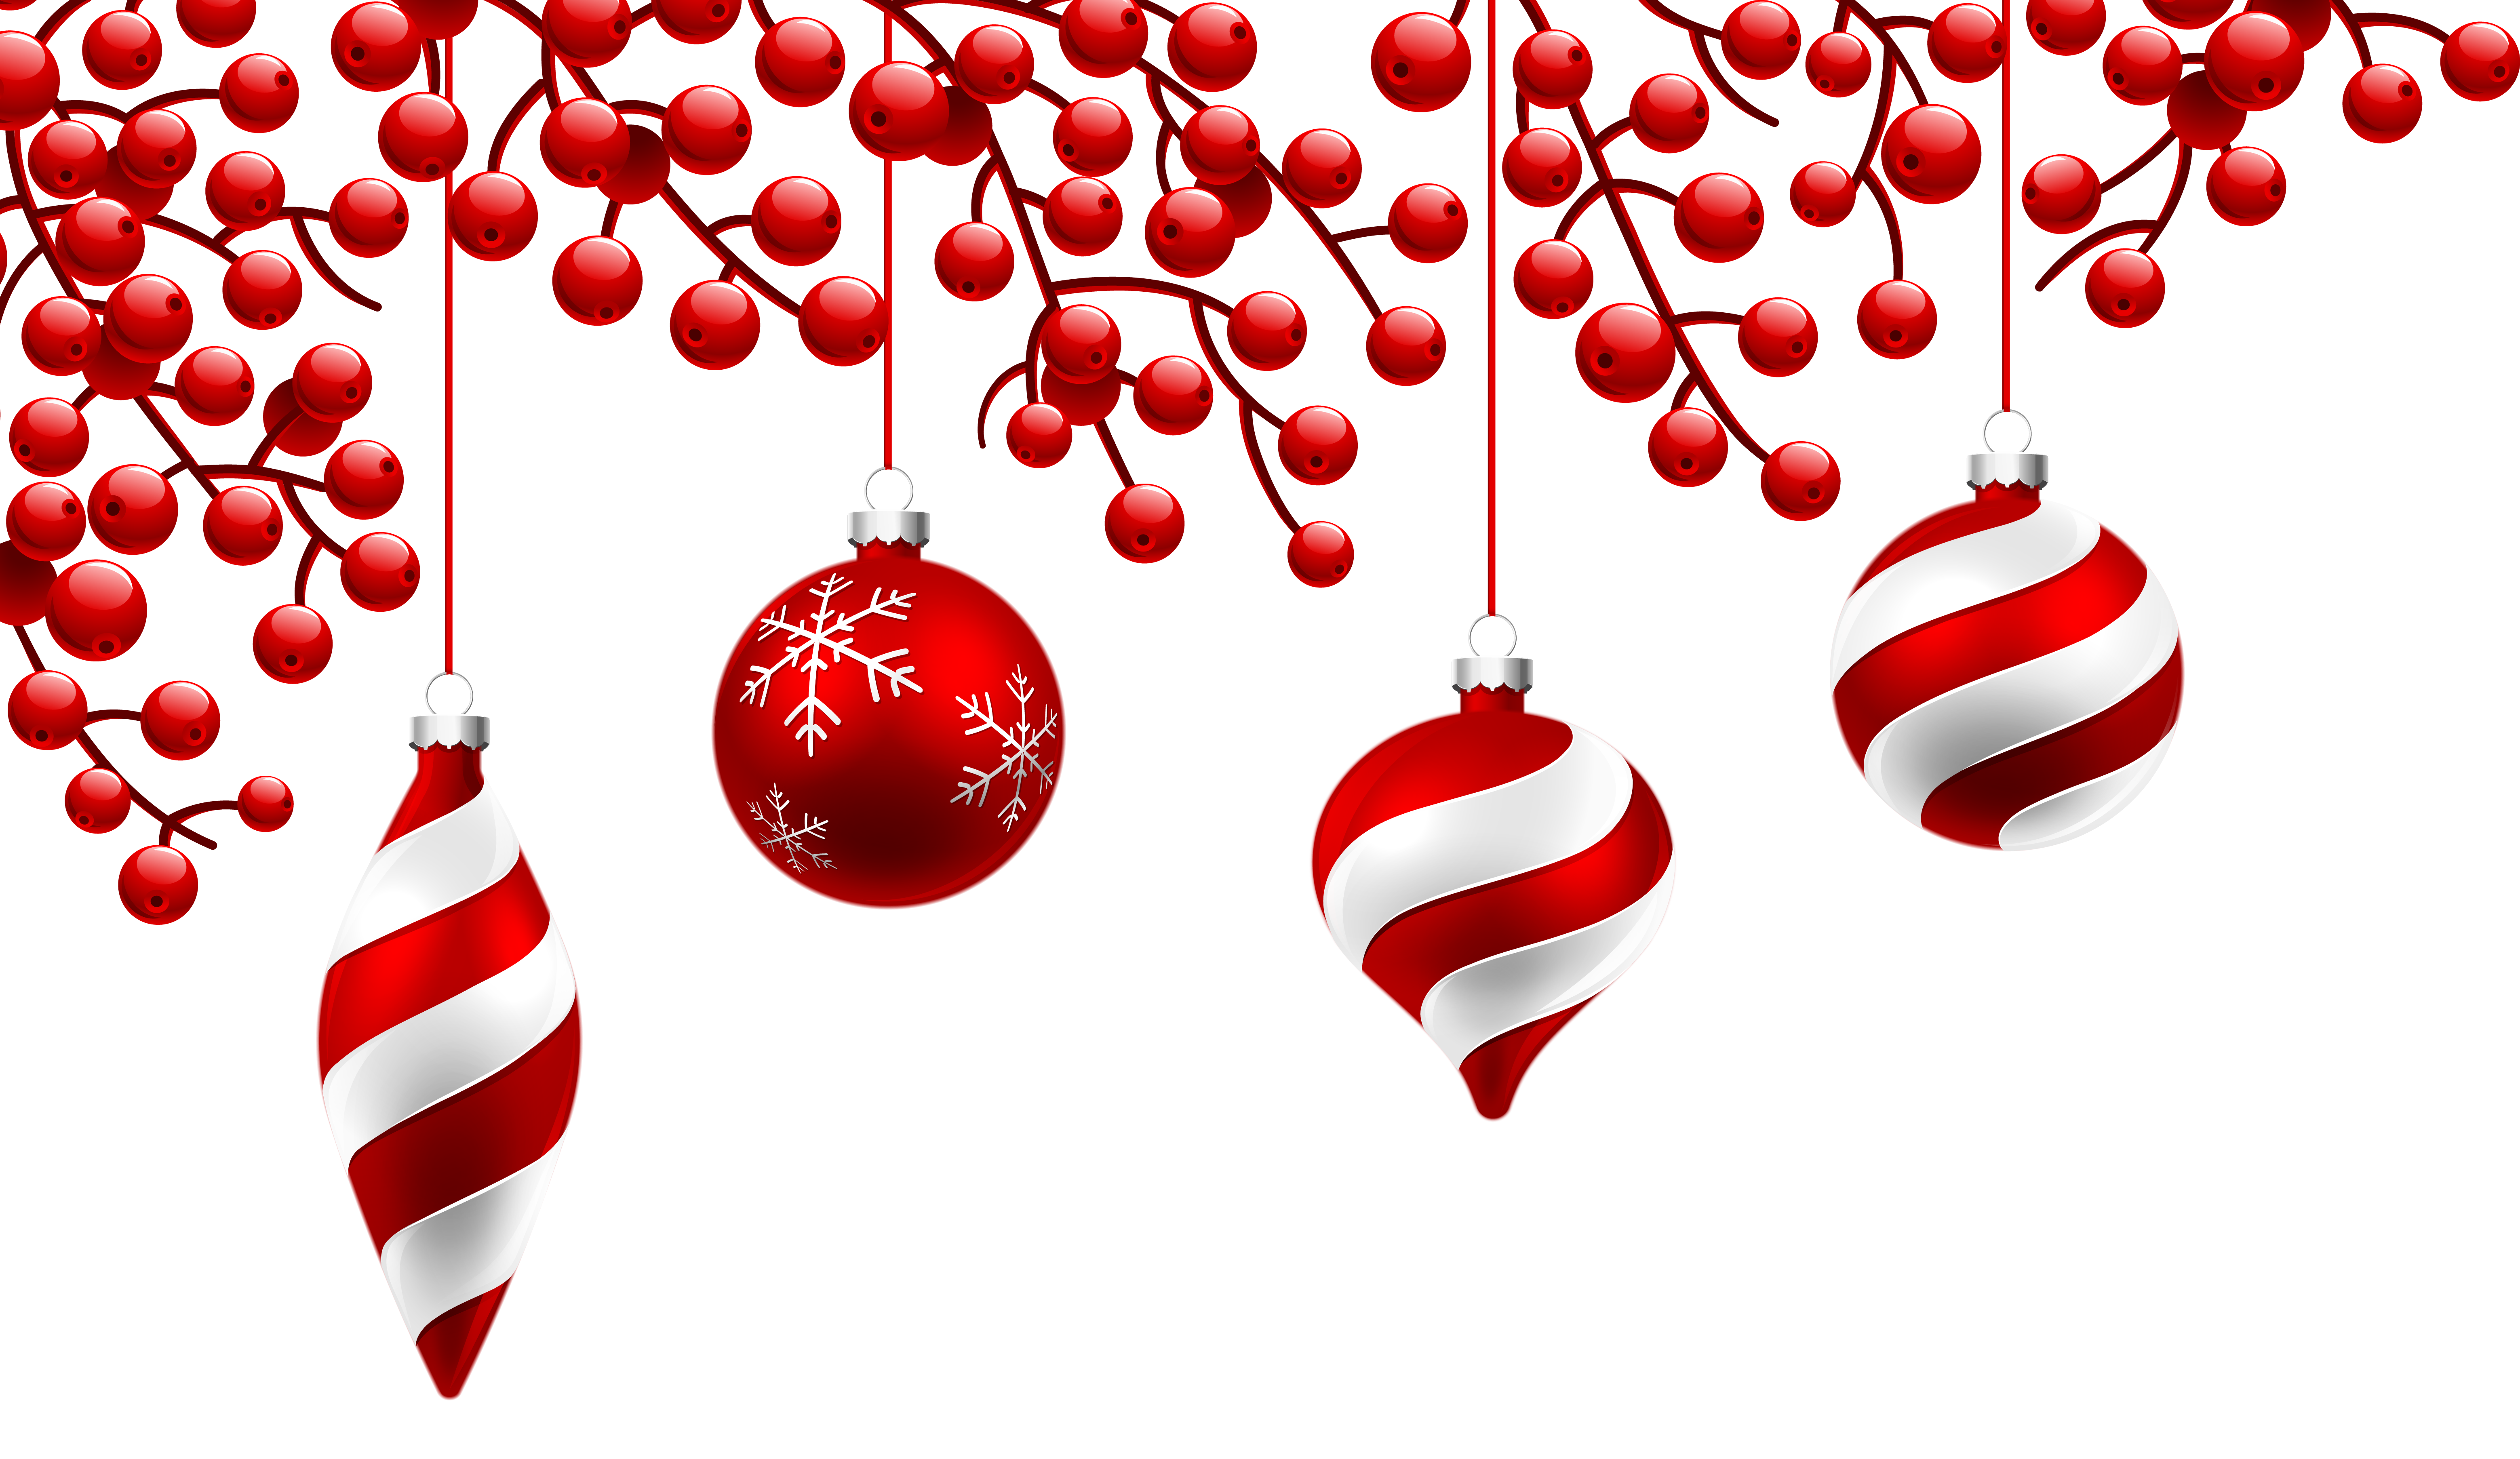 Transparent decoration red. Christmas png clipart image